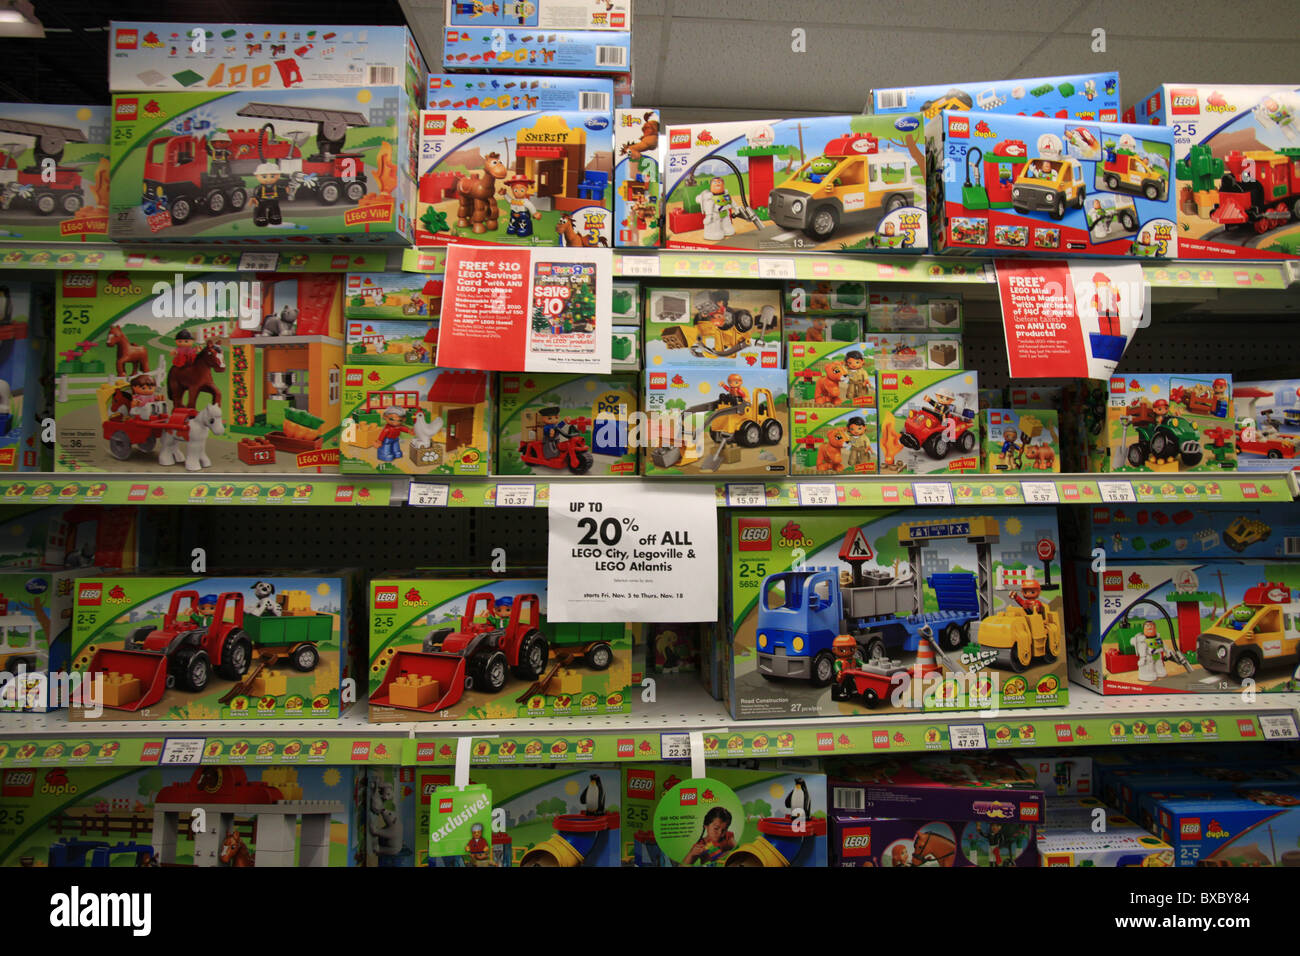 Lego vehicles on sale in Toys R Us store, Ontario, Canada